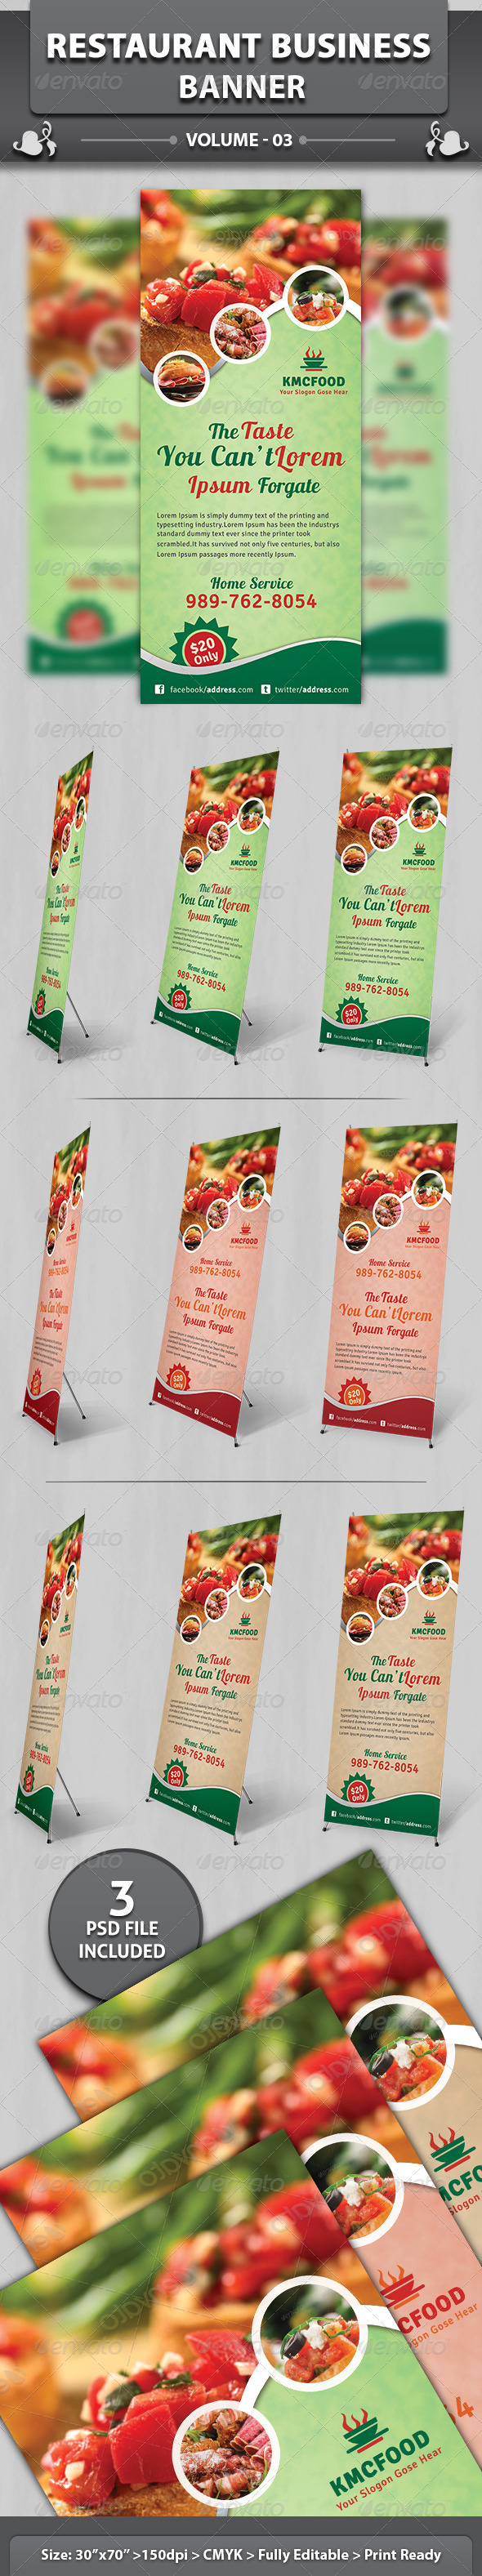 Restaurant Business Banner | Volume 3 - Signage Print Templates